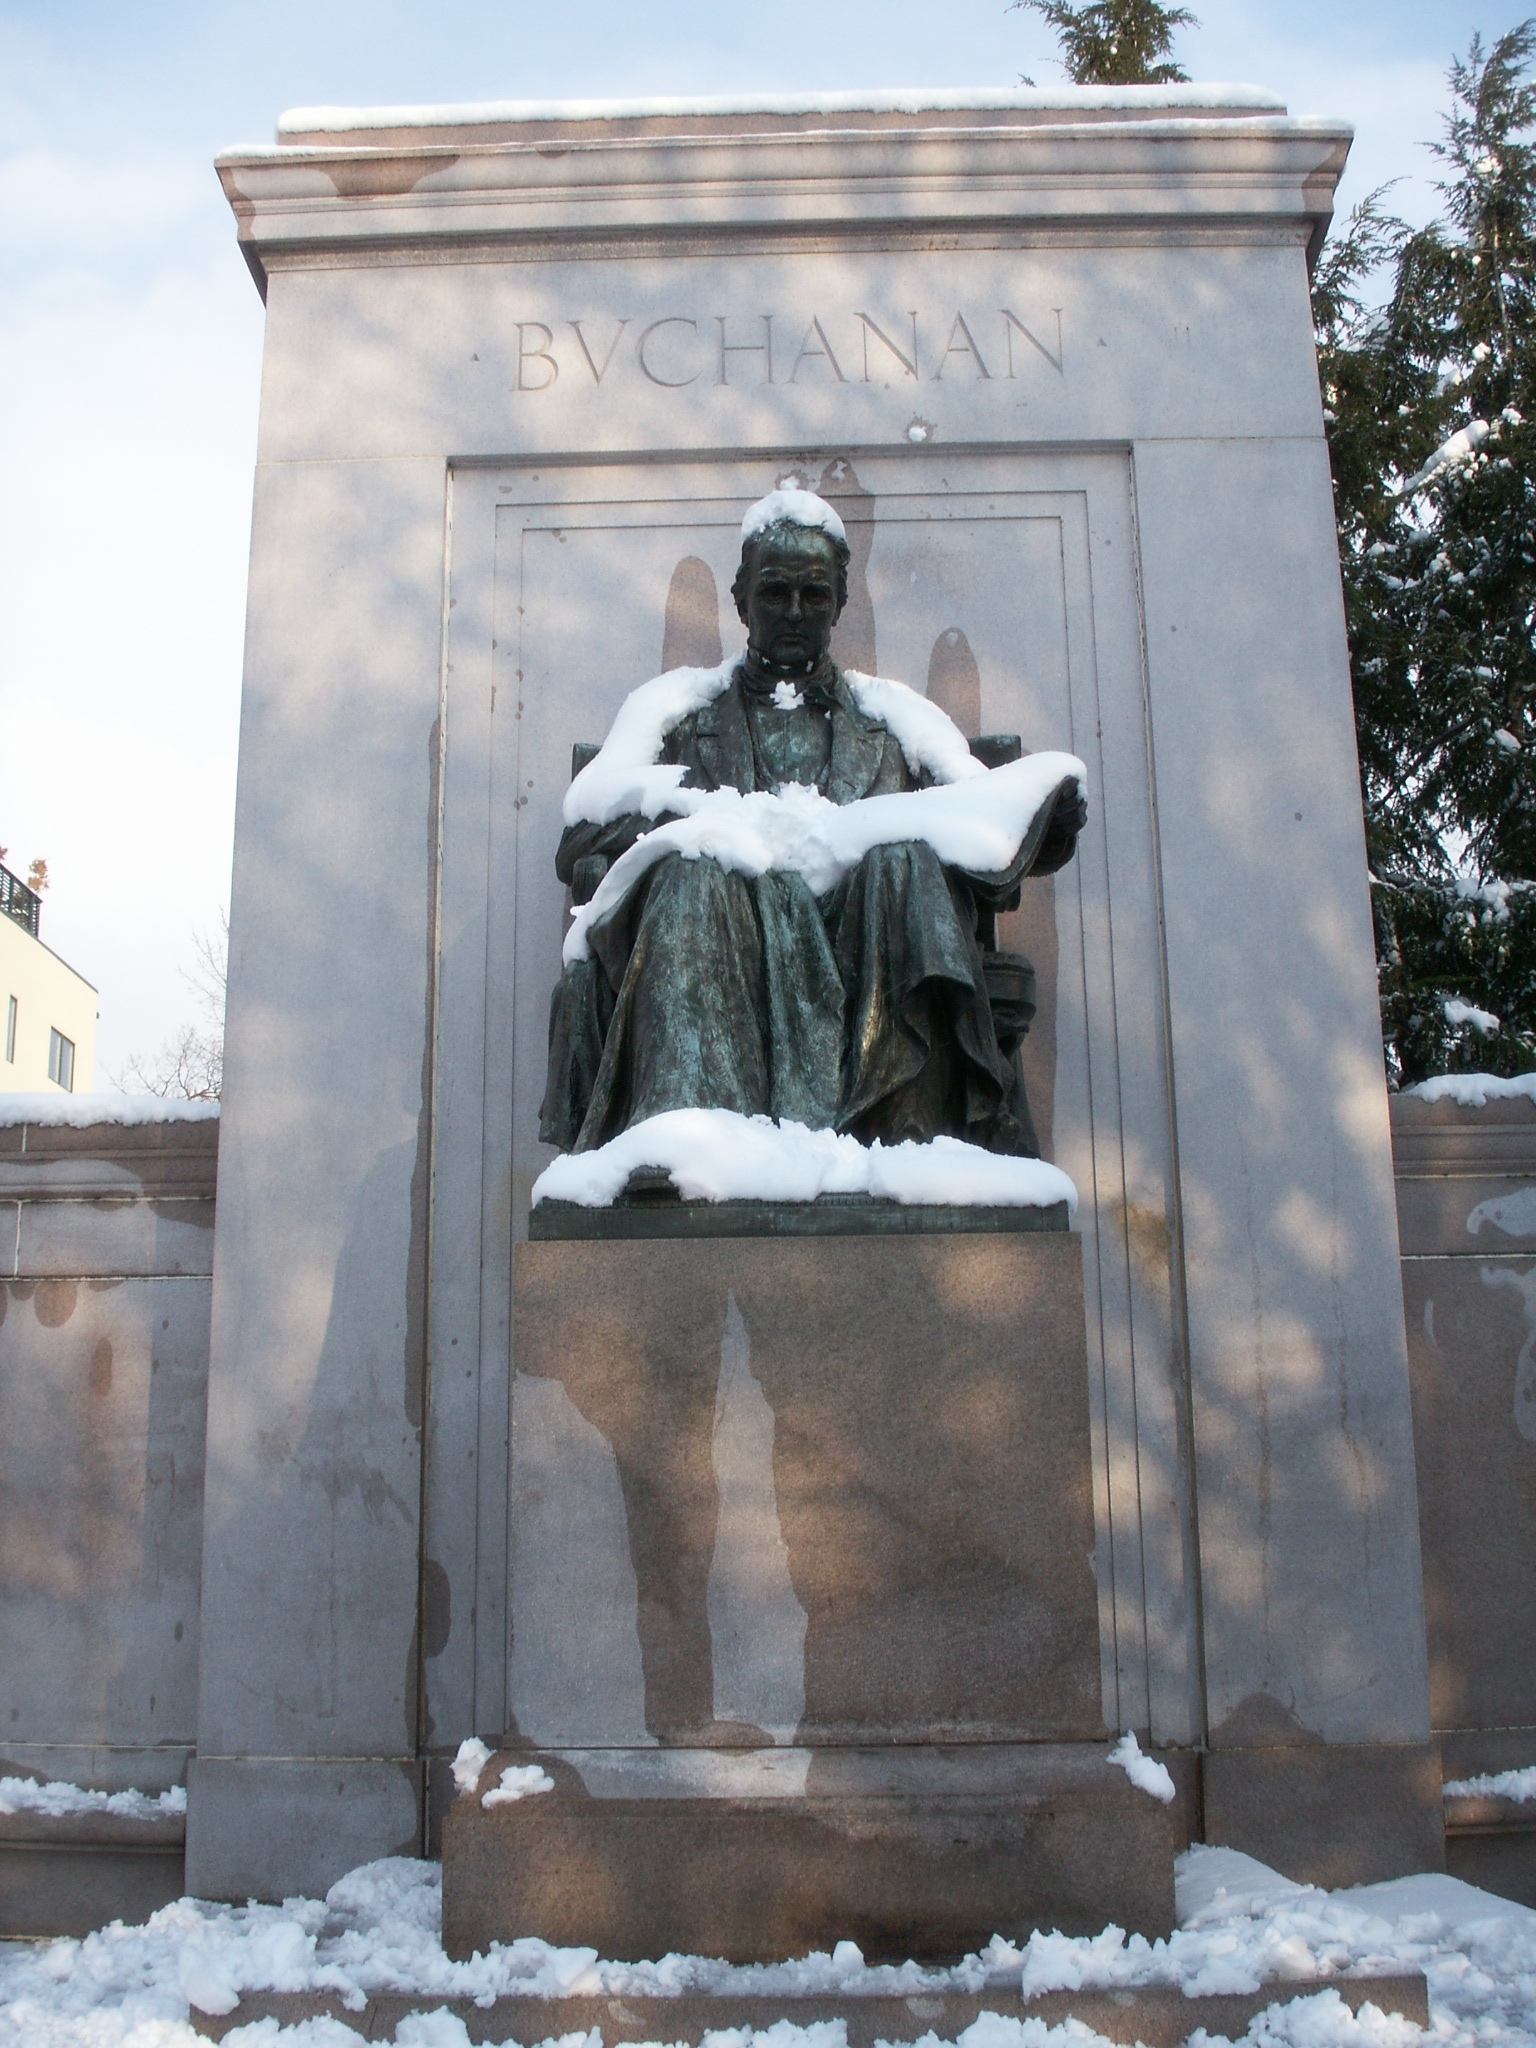 James Buchanan Memorial in Meridian Hill Park. Image by Daquella manera, CC BY 2.0, https://commons.wikimedia.org/w/index.php?curid=16116061